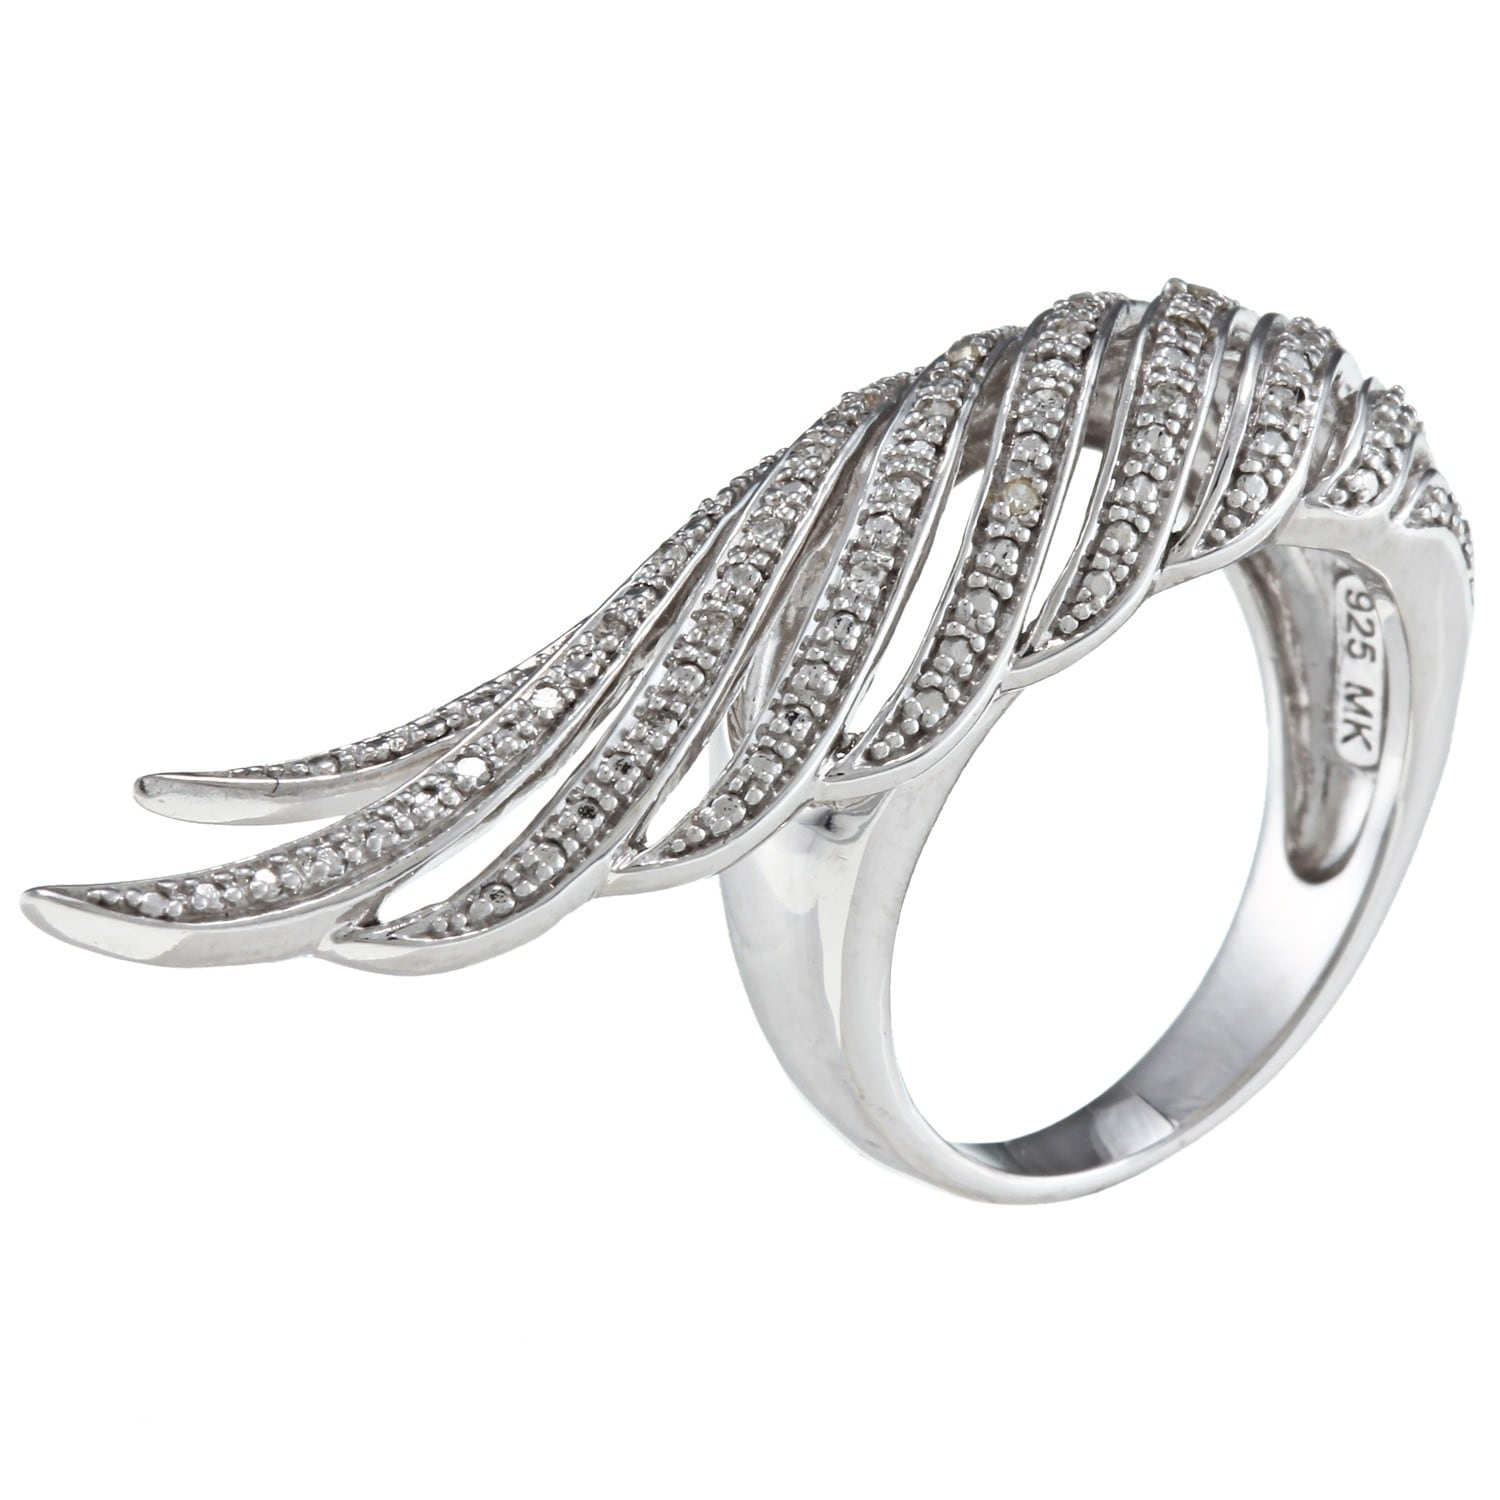 fantasy s u adjustable feather ring r statement k il gift engagement everyday box comes size listing angel with sterling cmvw rings fullxfull silver l